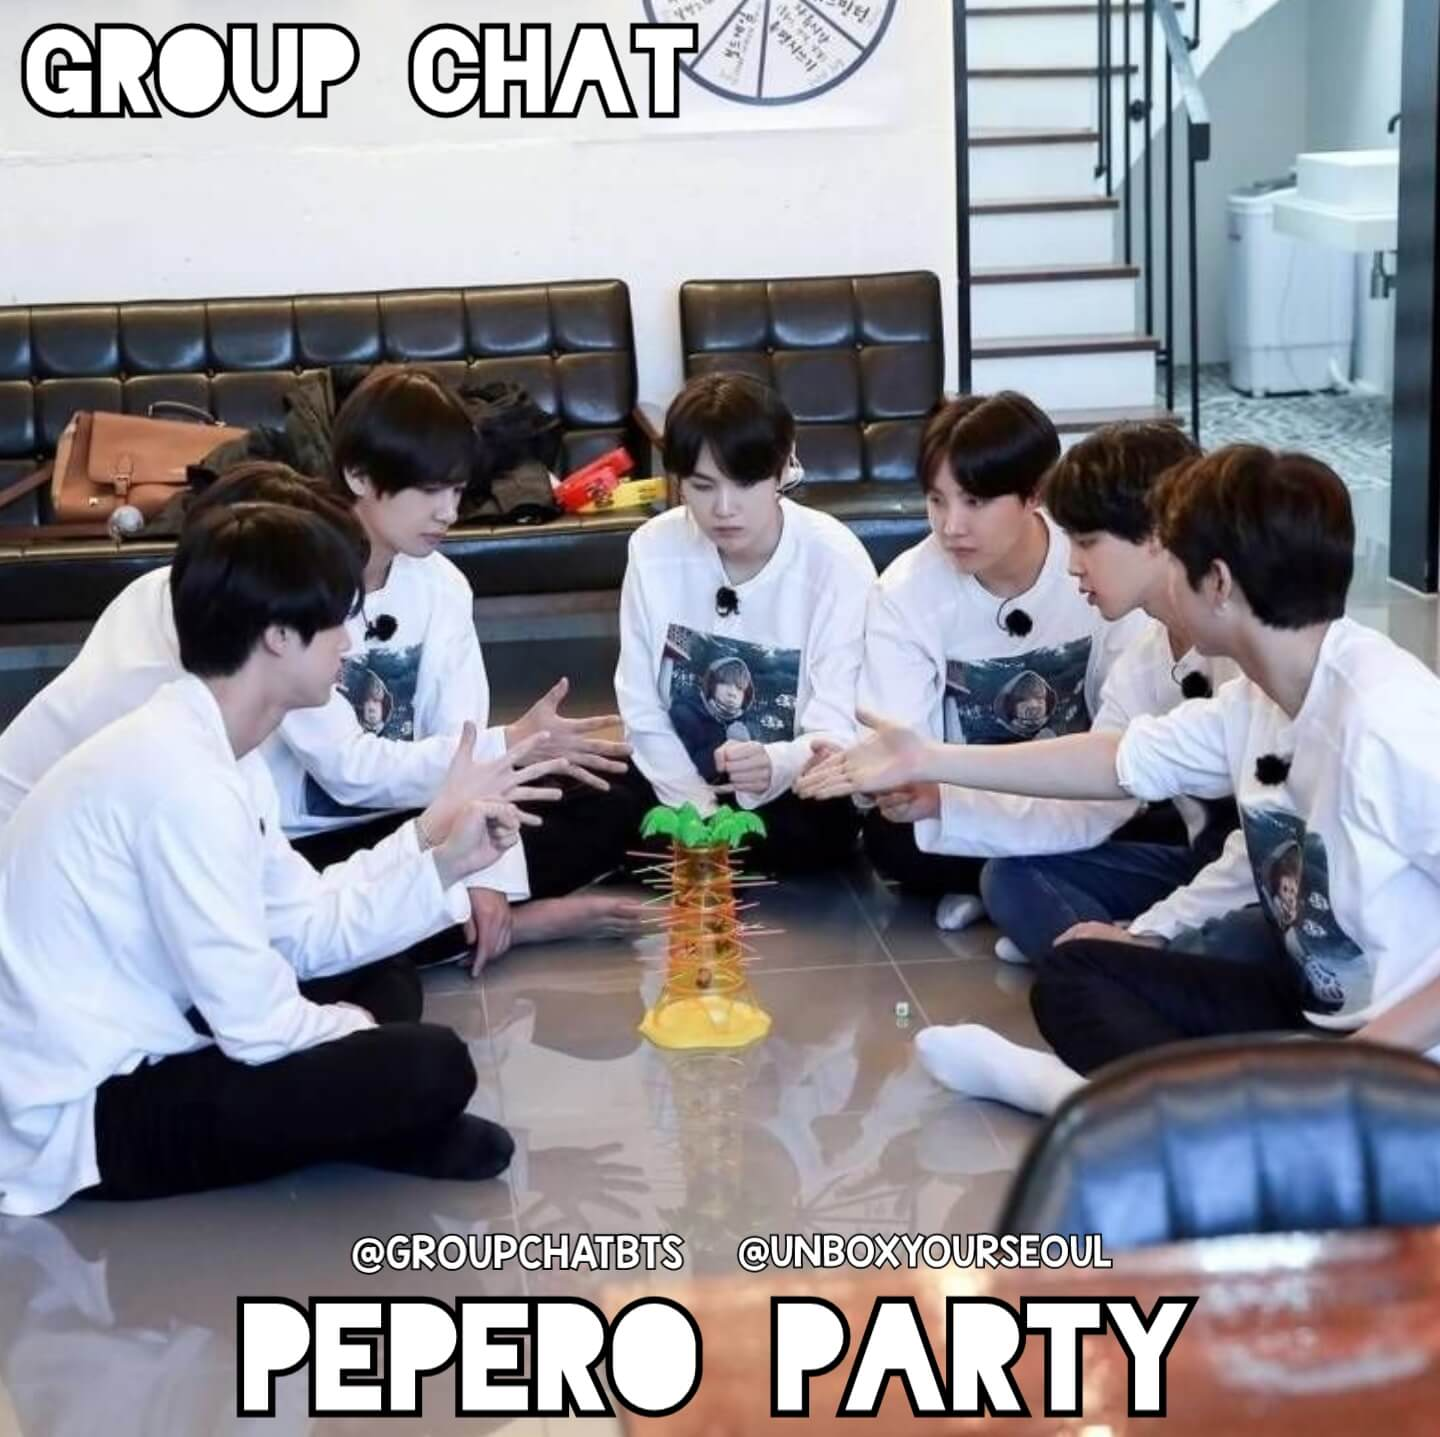 Group Chat BTS imagines Pepero Party with BTS memebers